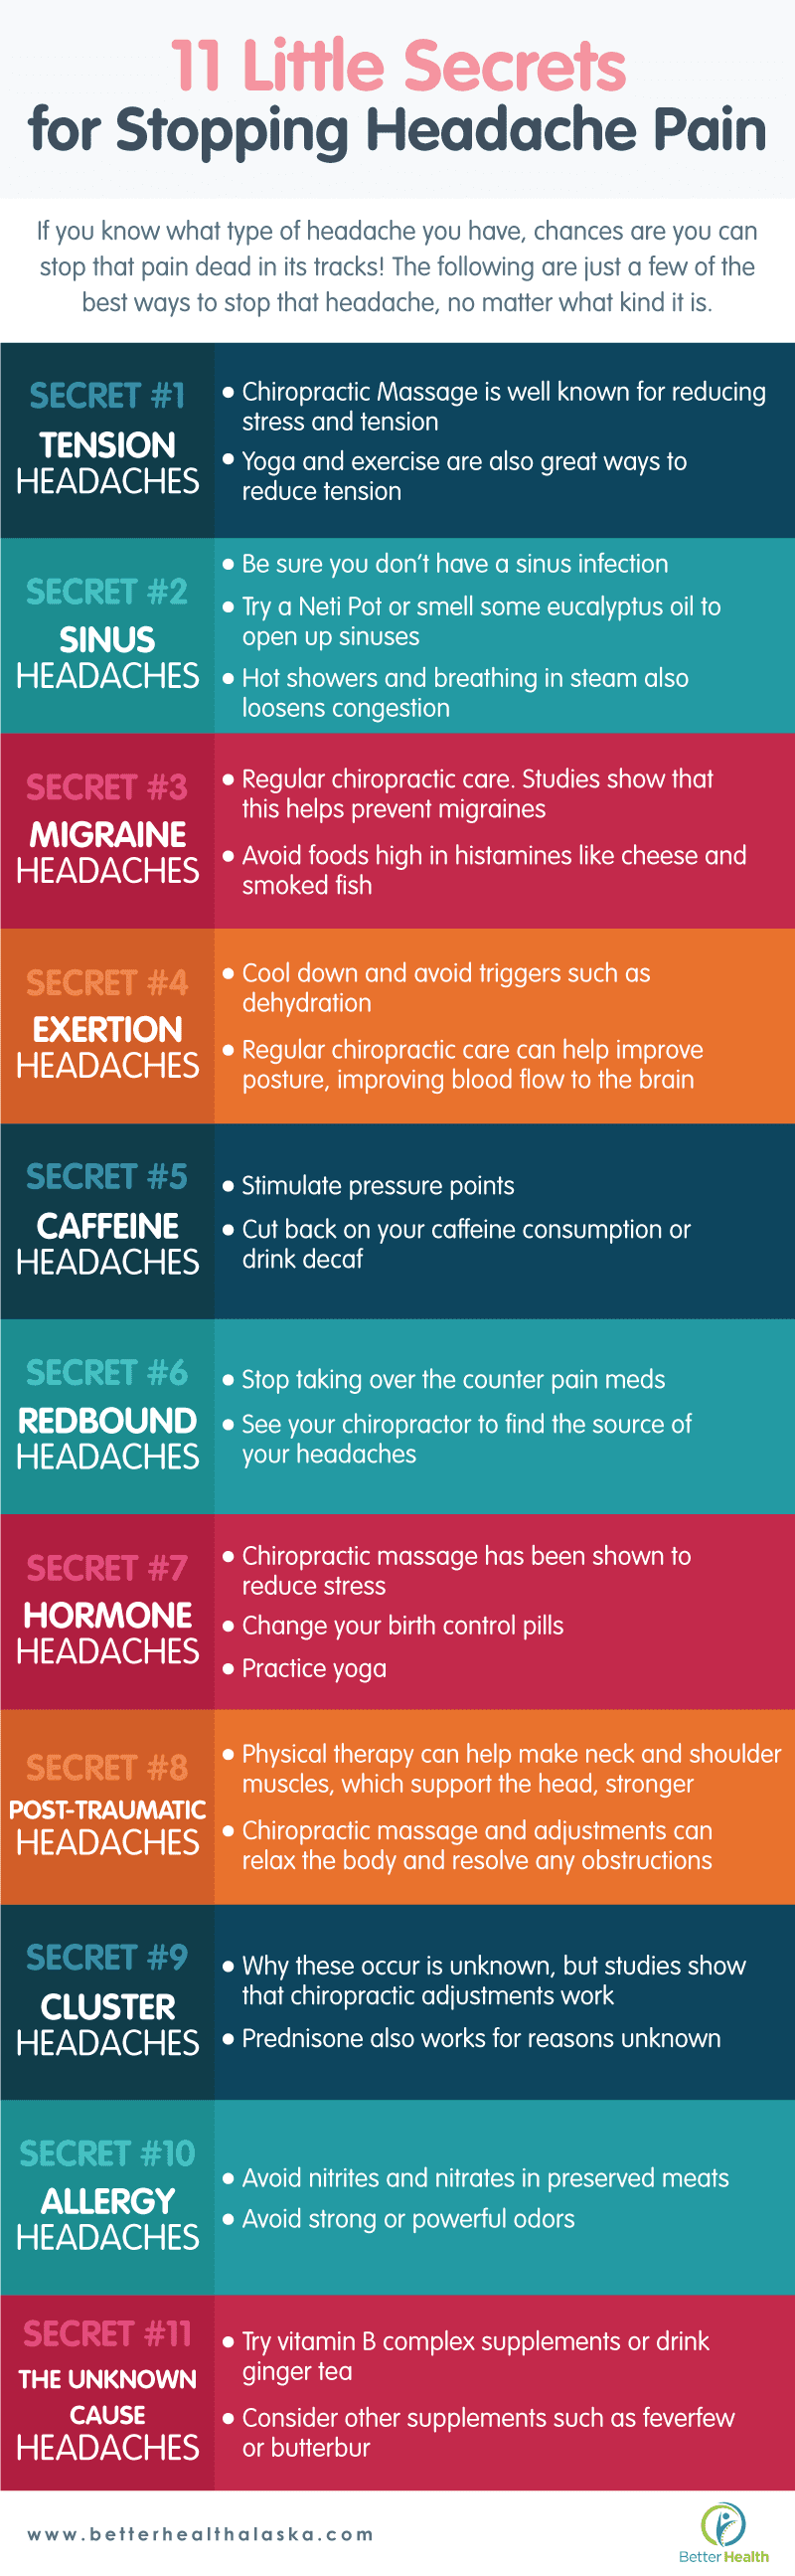 11 Little Secrets for Stopping Headache Pain Infographic